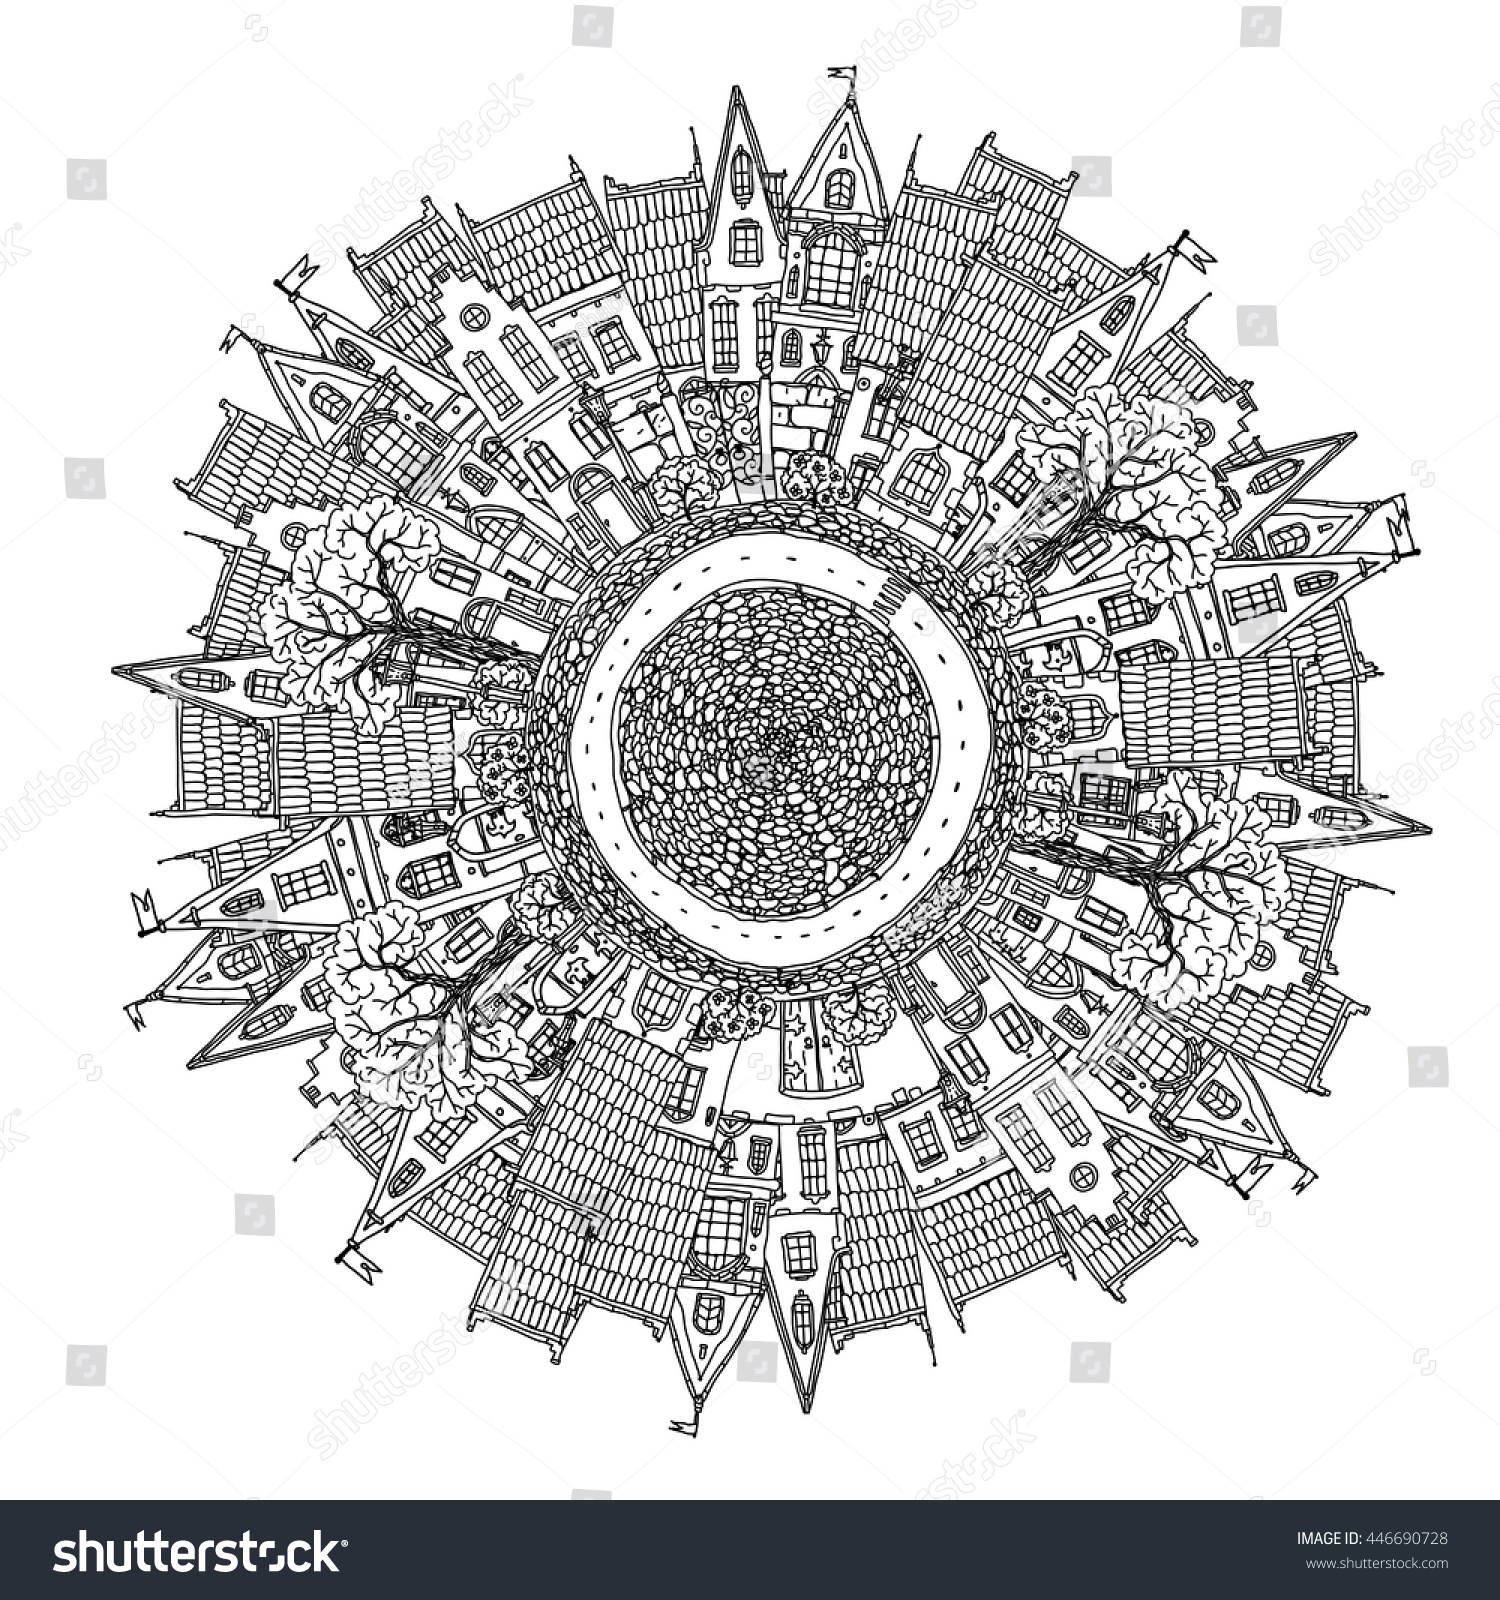 Decorative Ornamental Houses And City Life Details On Mandala Shape Contoured Medieval Buildings With Tile Roof